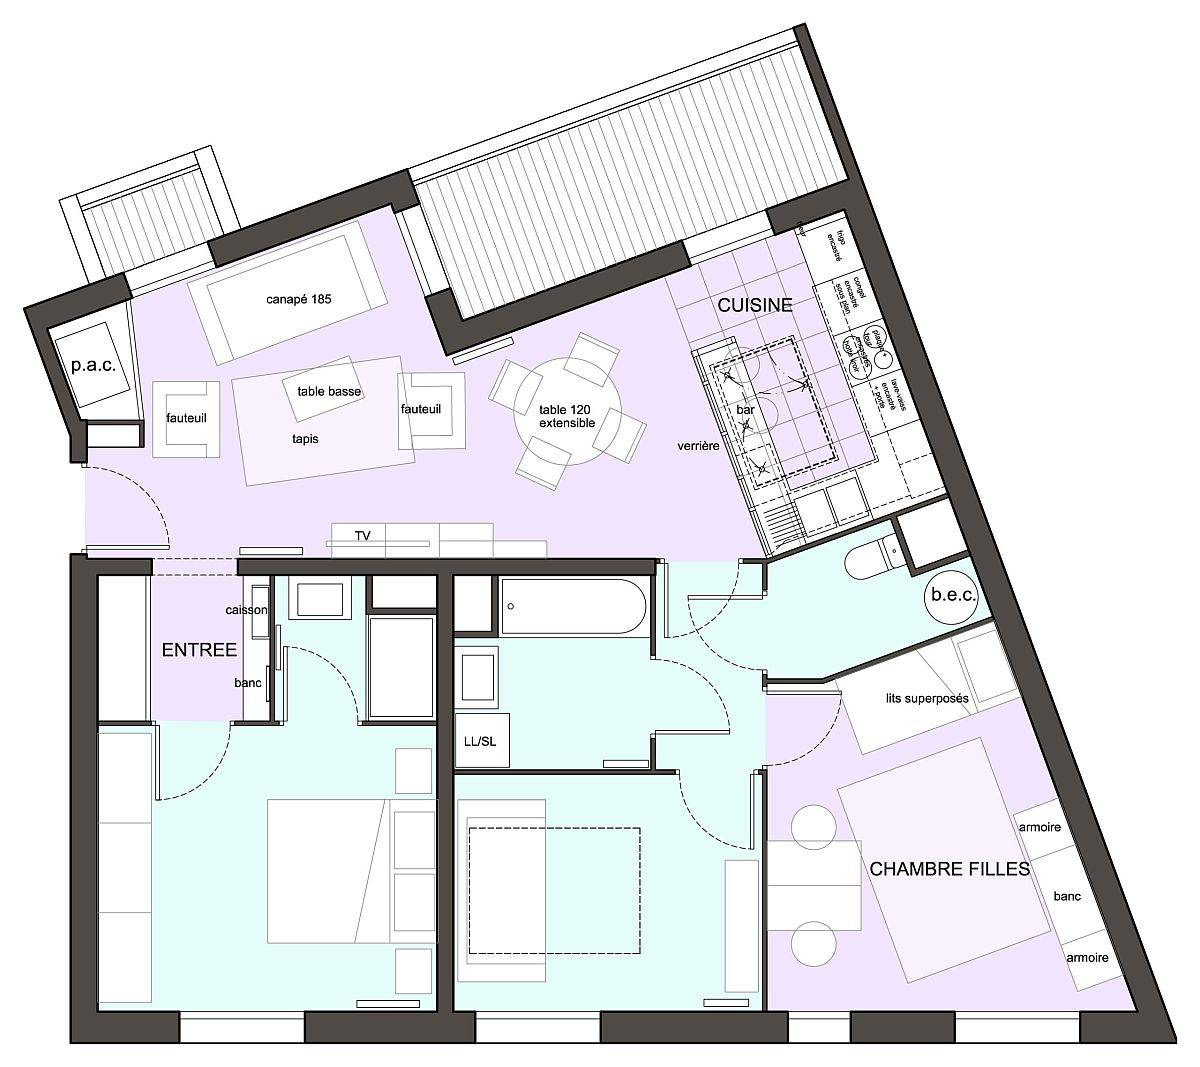 Revamped-foor-plan-of-the-apartment-with-kitchen-and-dining-area-36882